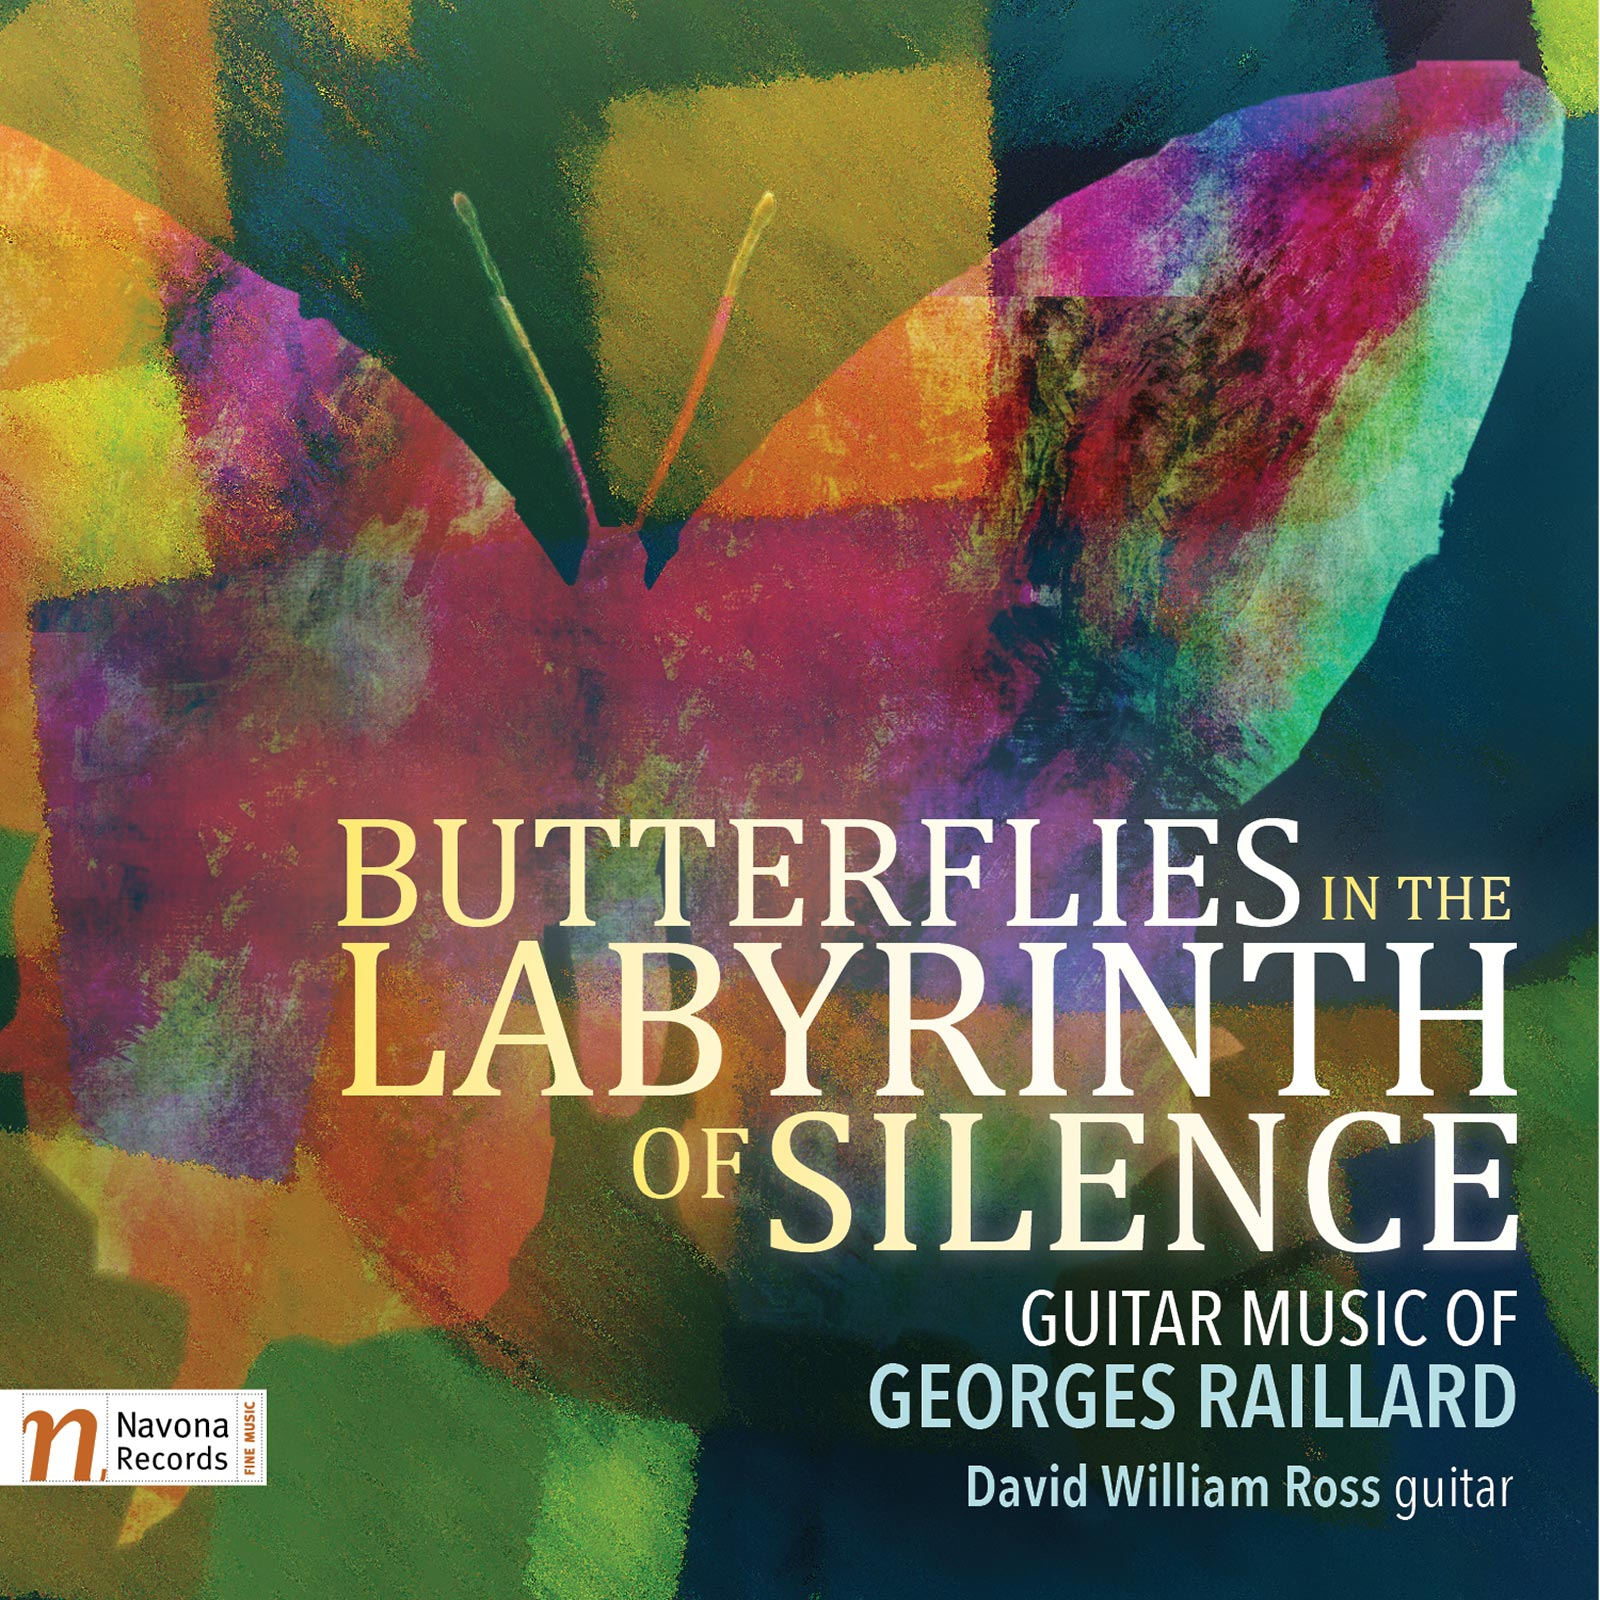 Butterflies in the Labrynth of Silence